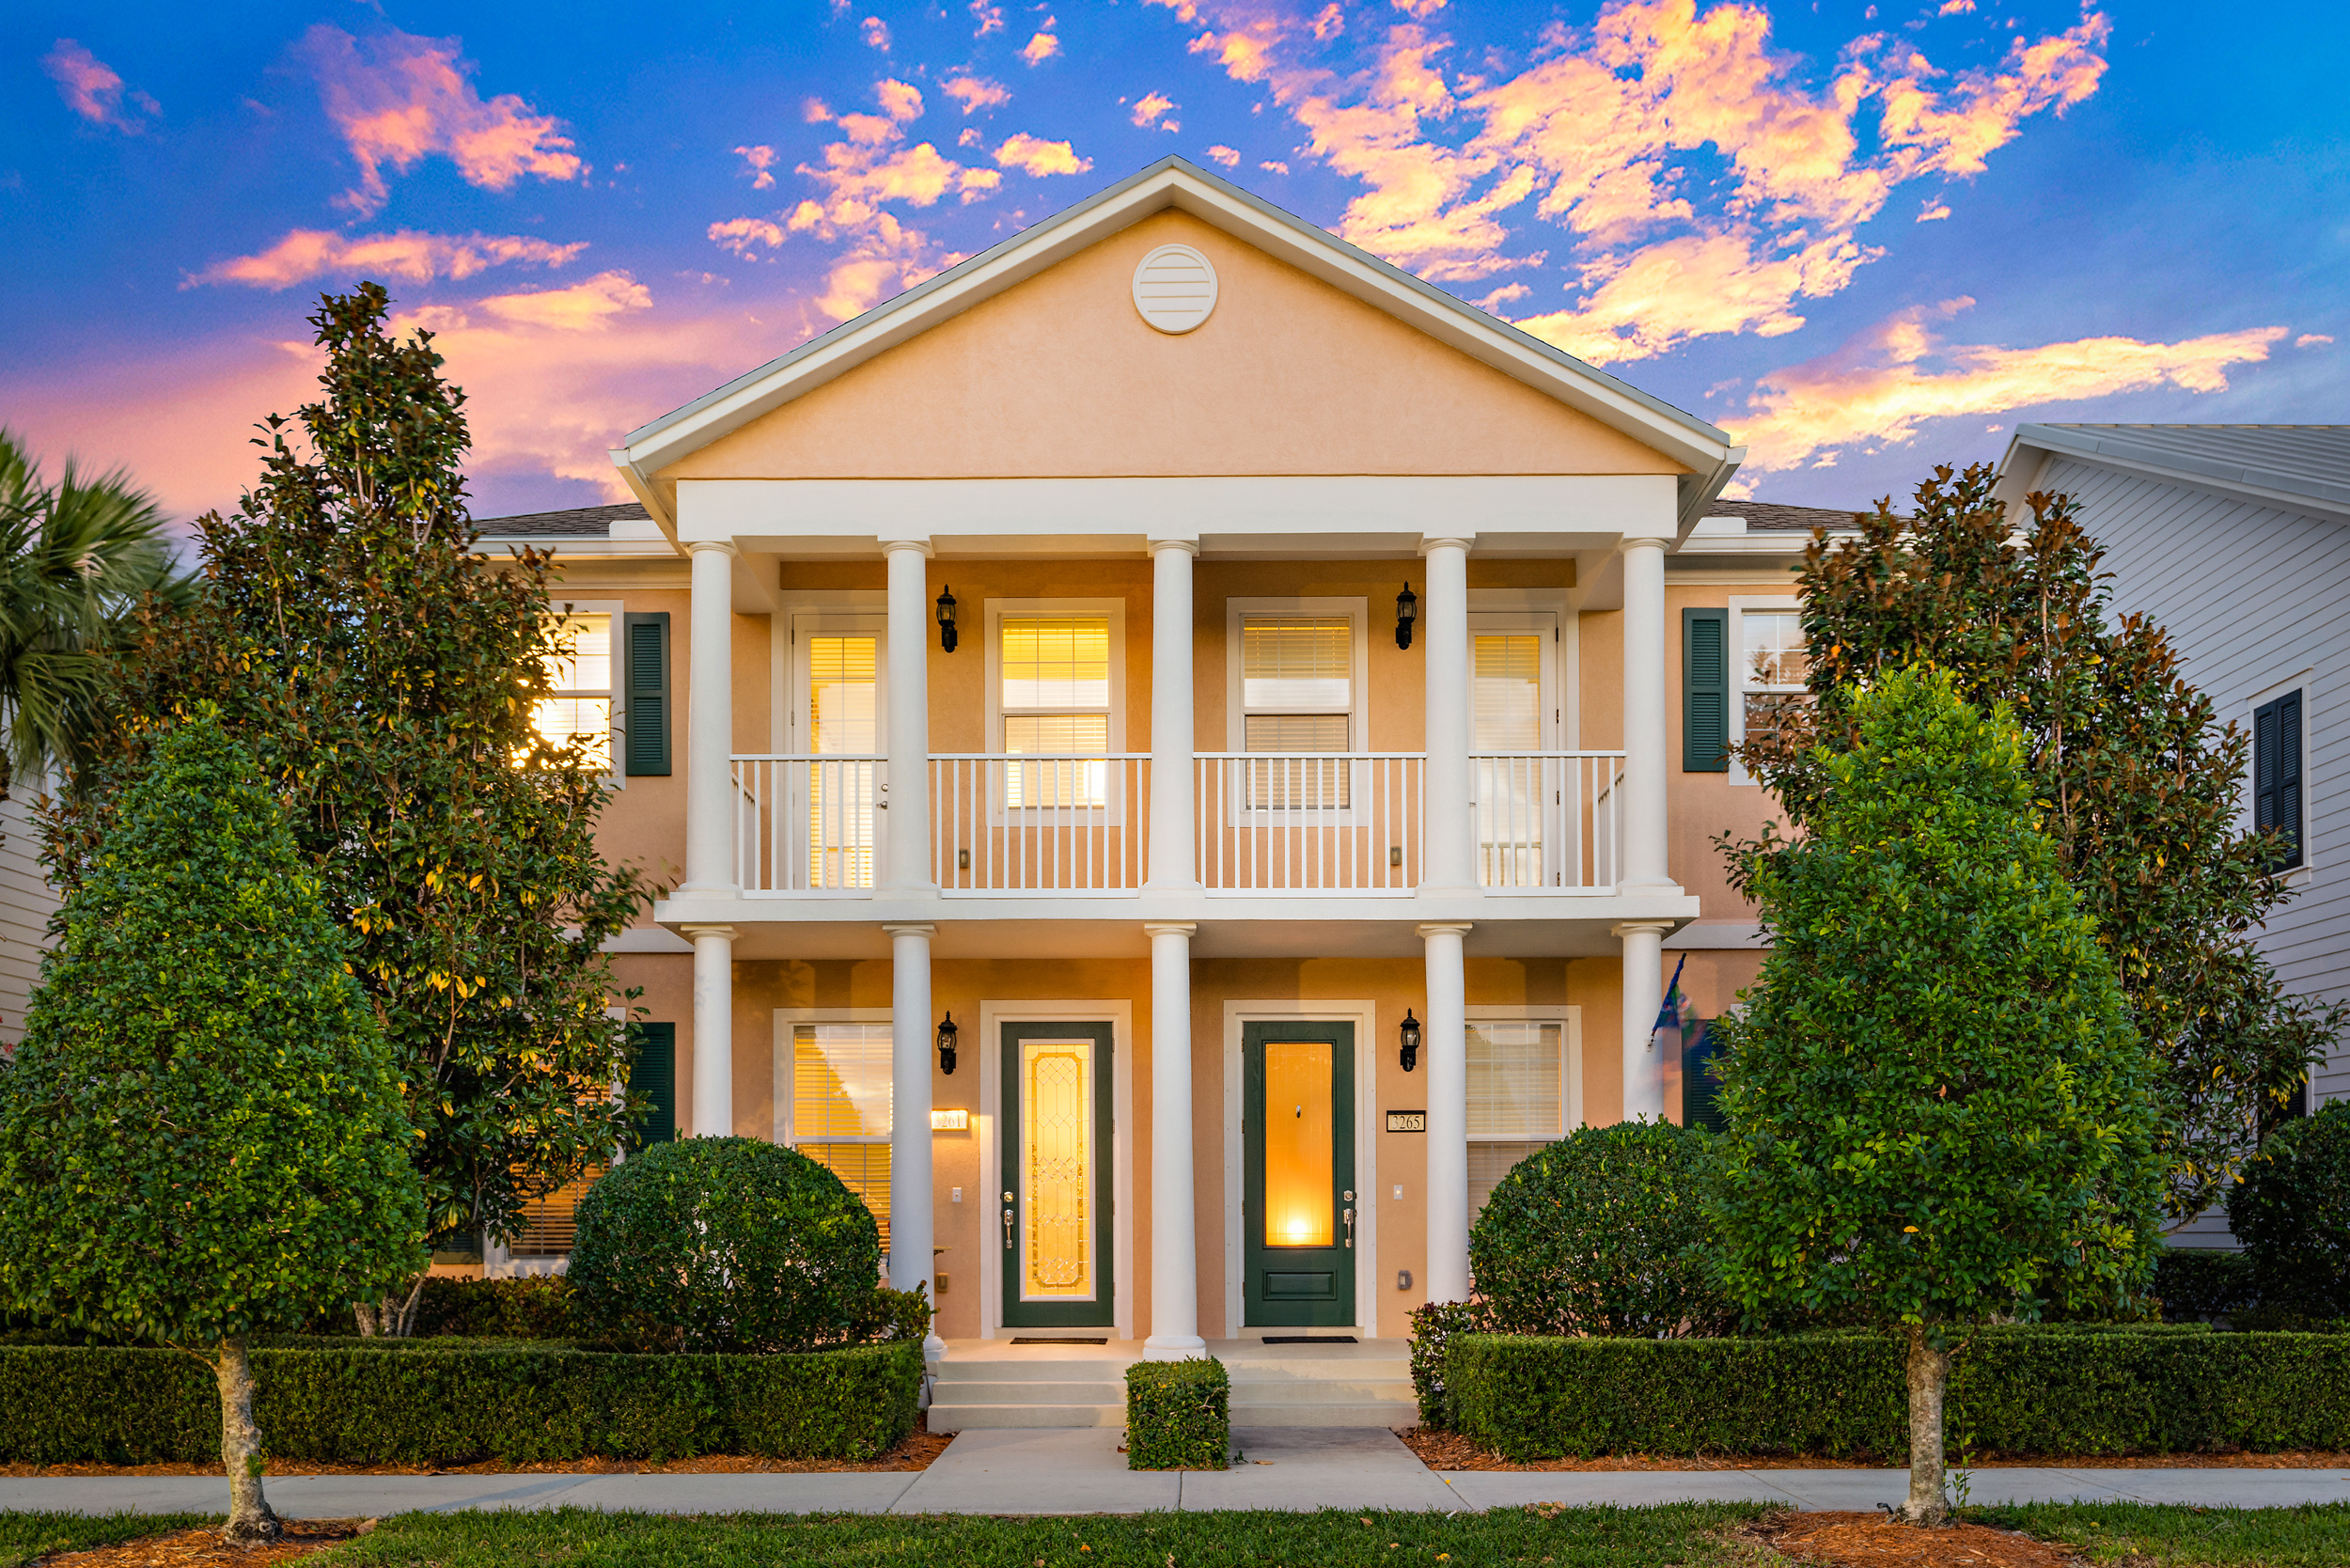 Homes For Sale in Abacoa - See all single family homes for sale in Abacoa of Jupiter, Florida.